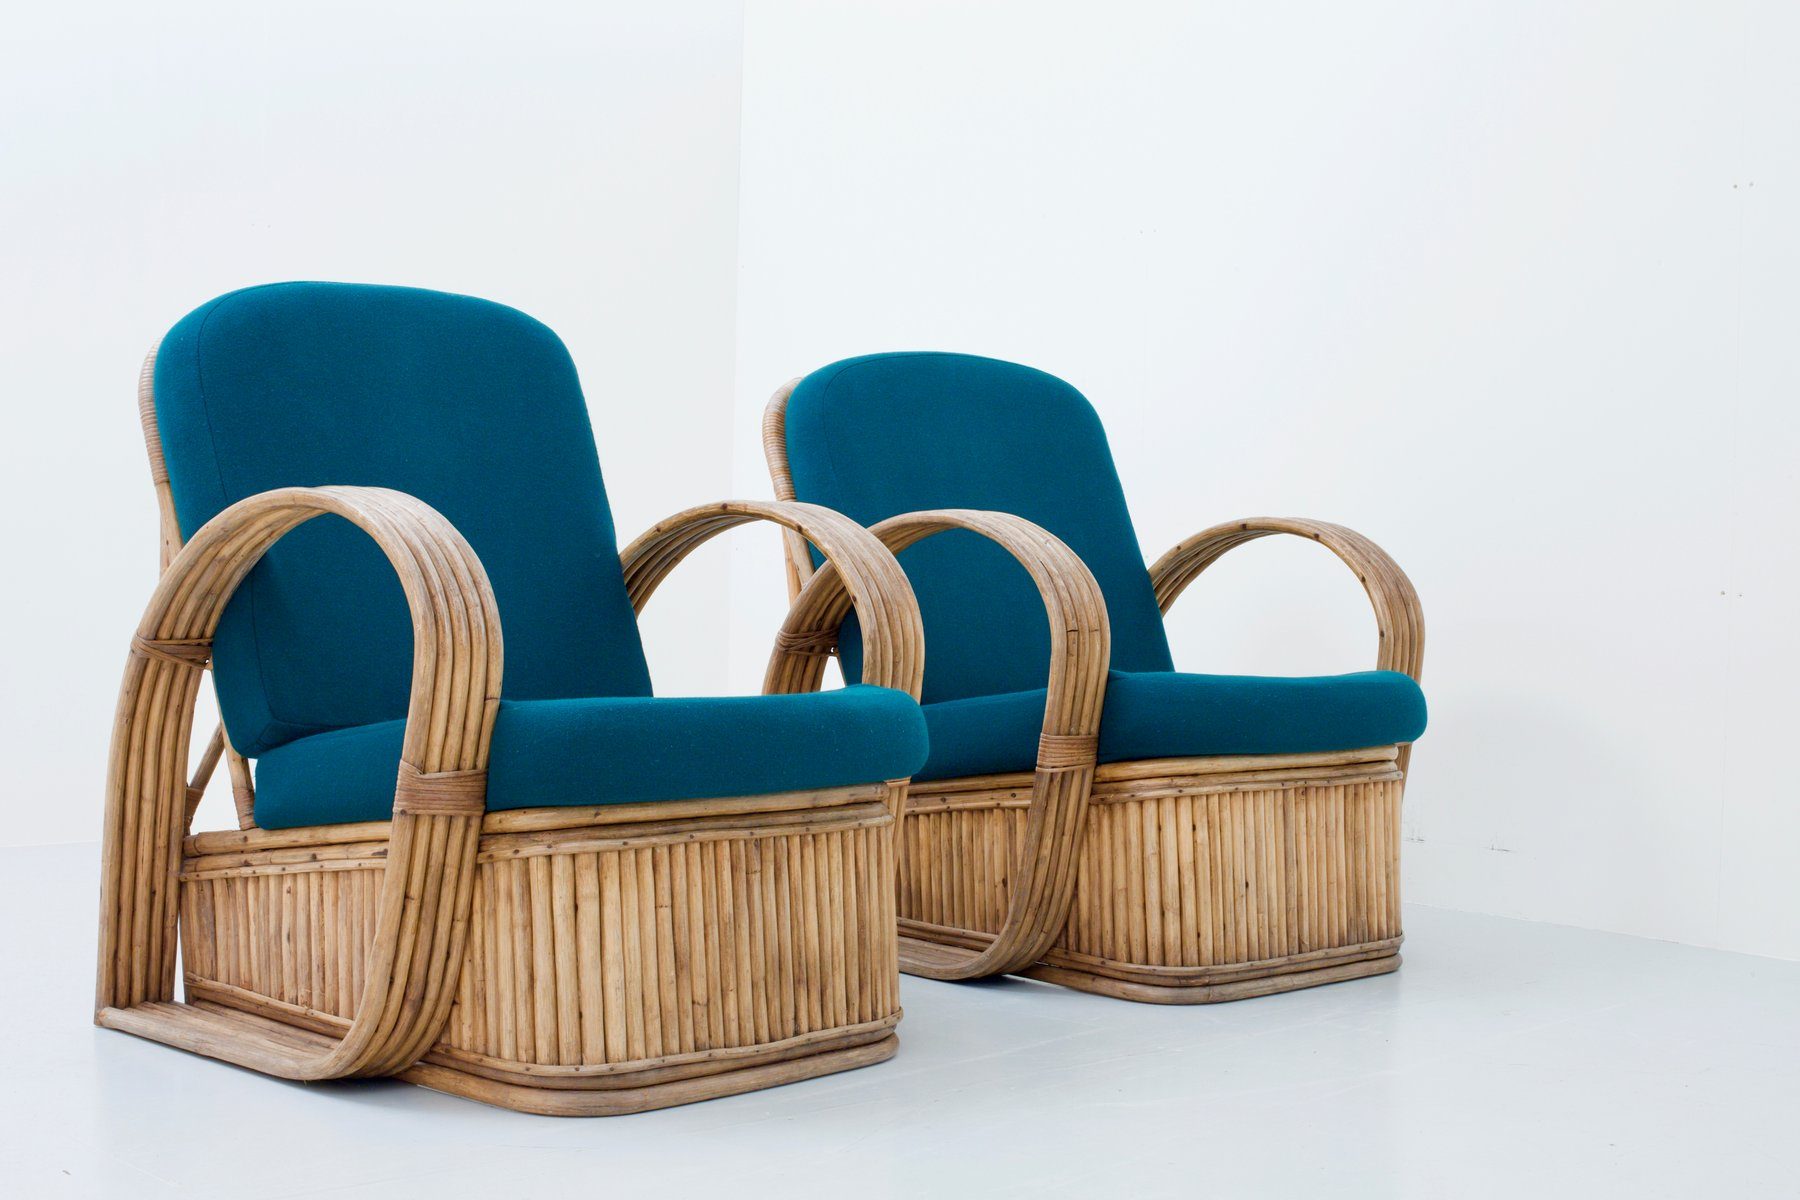 Italian Rattan Chairs In Green Wool 1950s Set Of 2 For Sale At Pamono